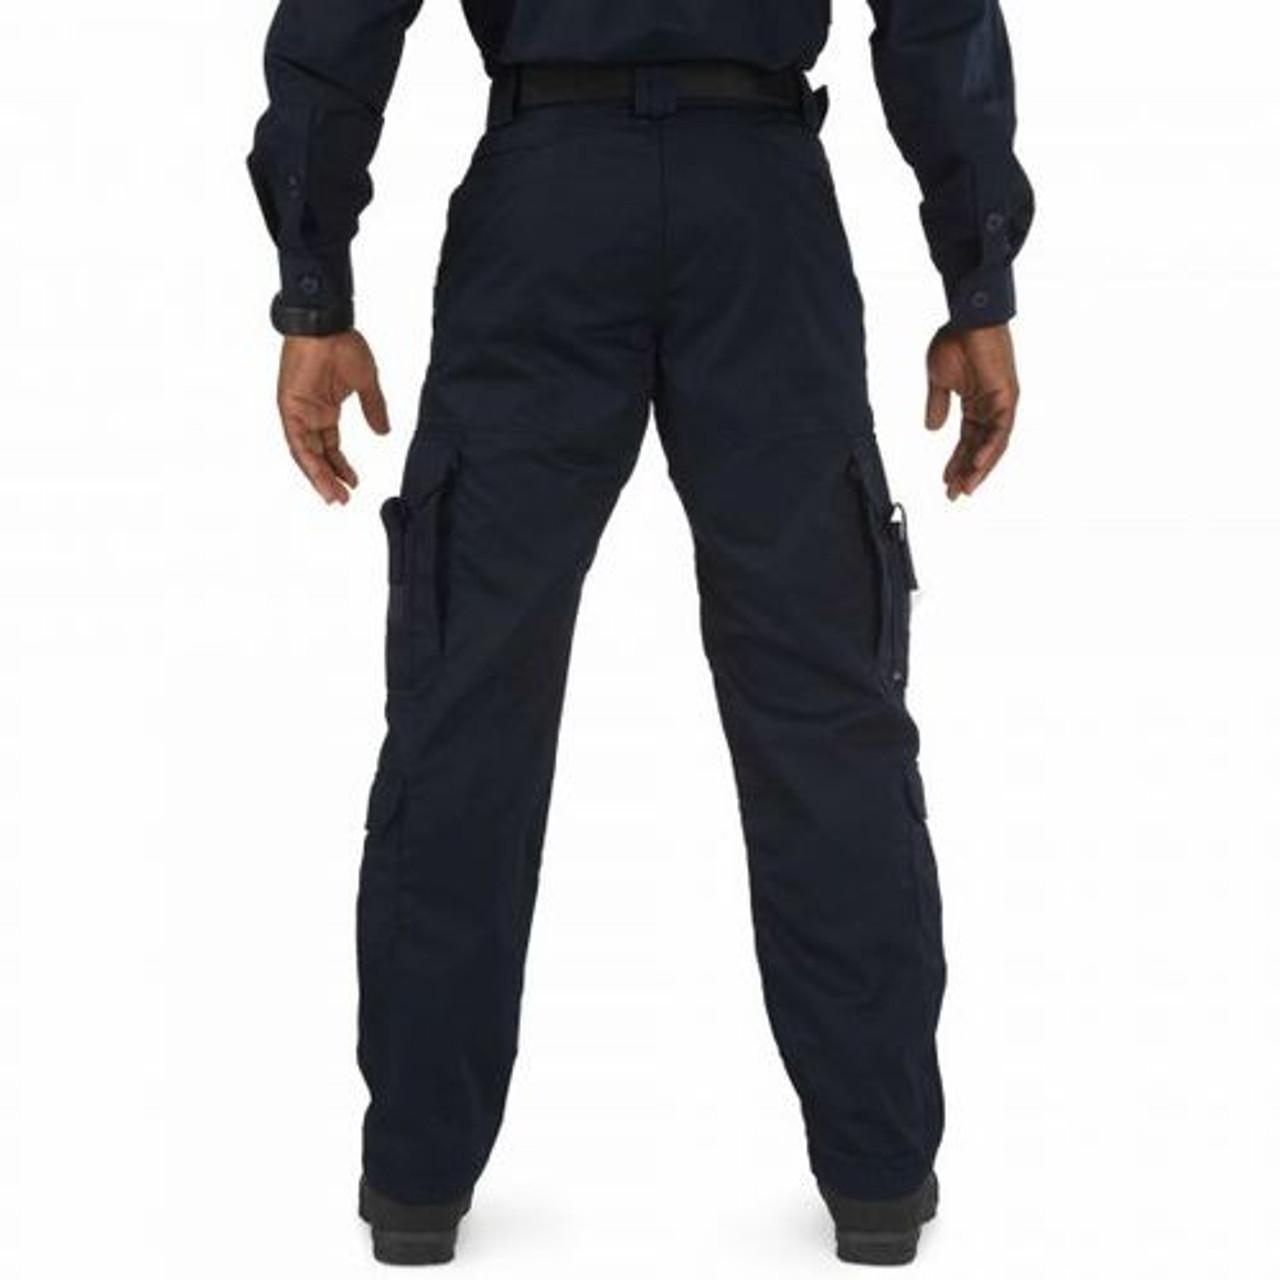 5.11 Tactical 74310 MEN'S EMS PANTS, polyester/cotton, Uniform/Cargo, Classic/Straight, Teflon® finish for stain and soil resistance, Adjustable Waistband, compartmentalized cargo pockets and secondary cargo pockets at the calf